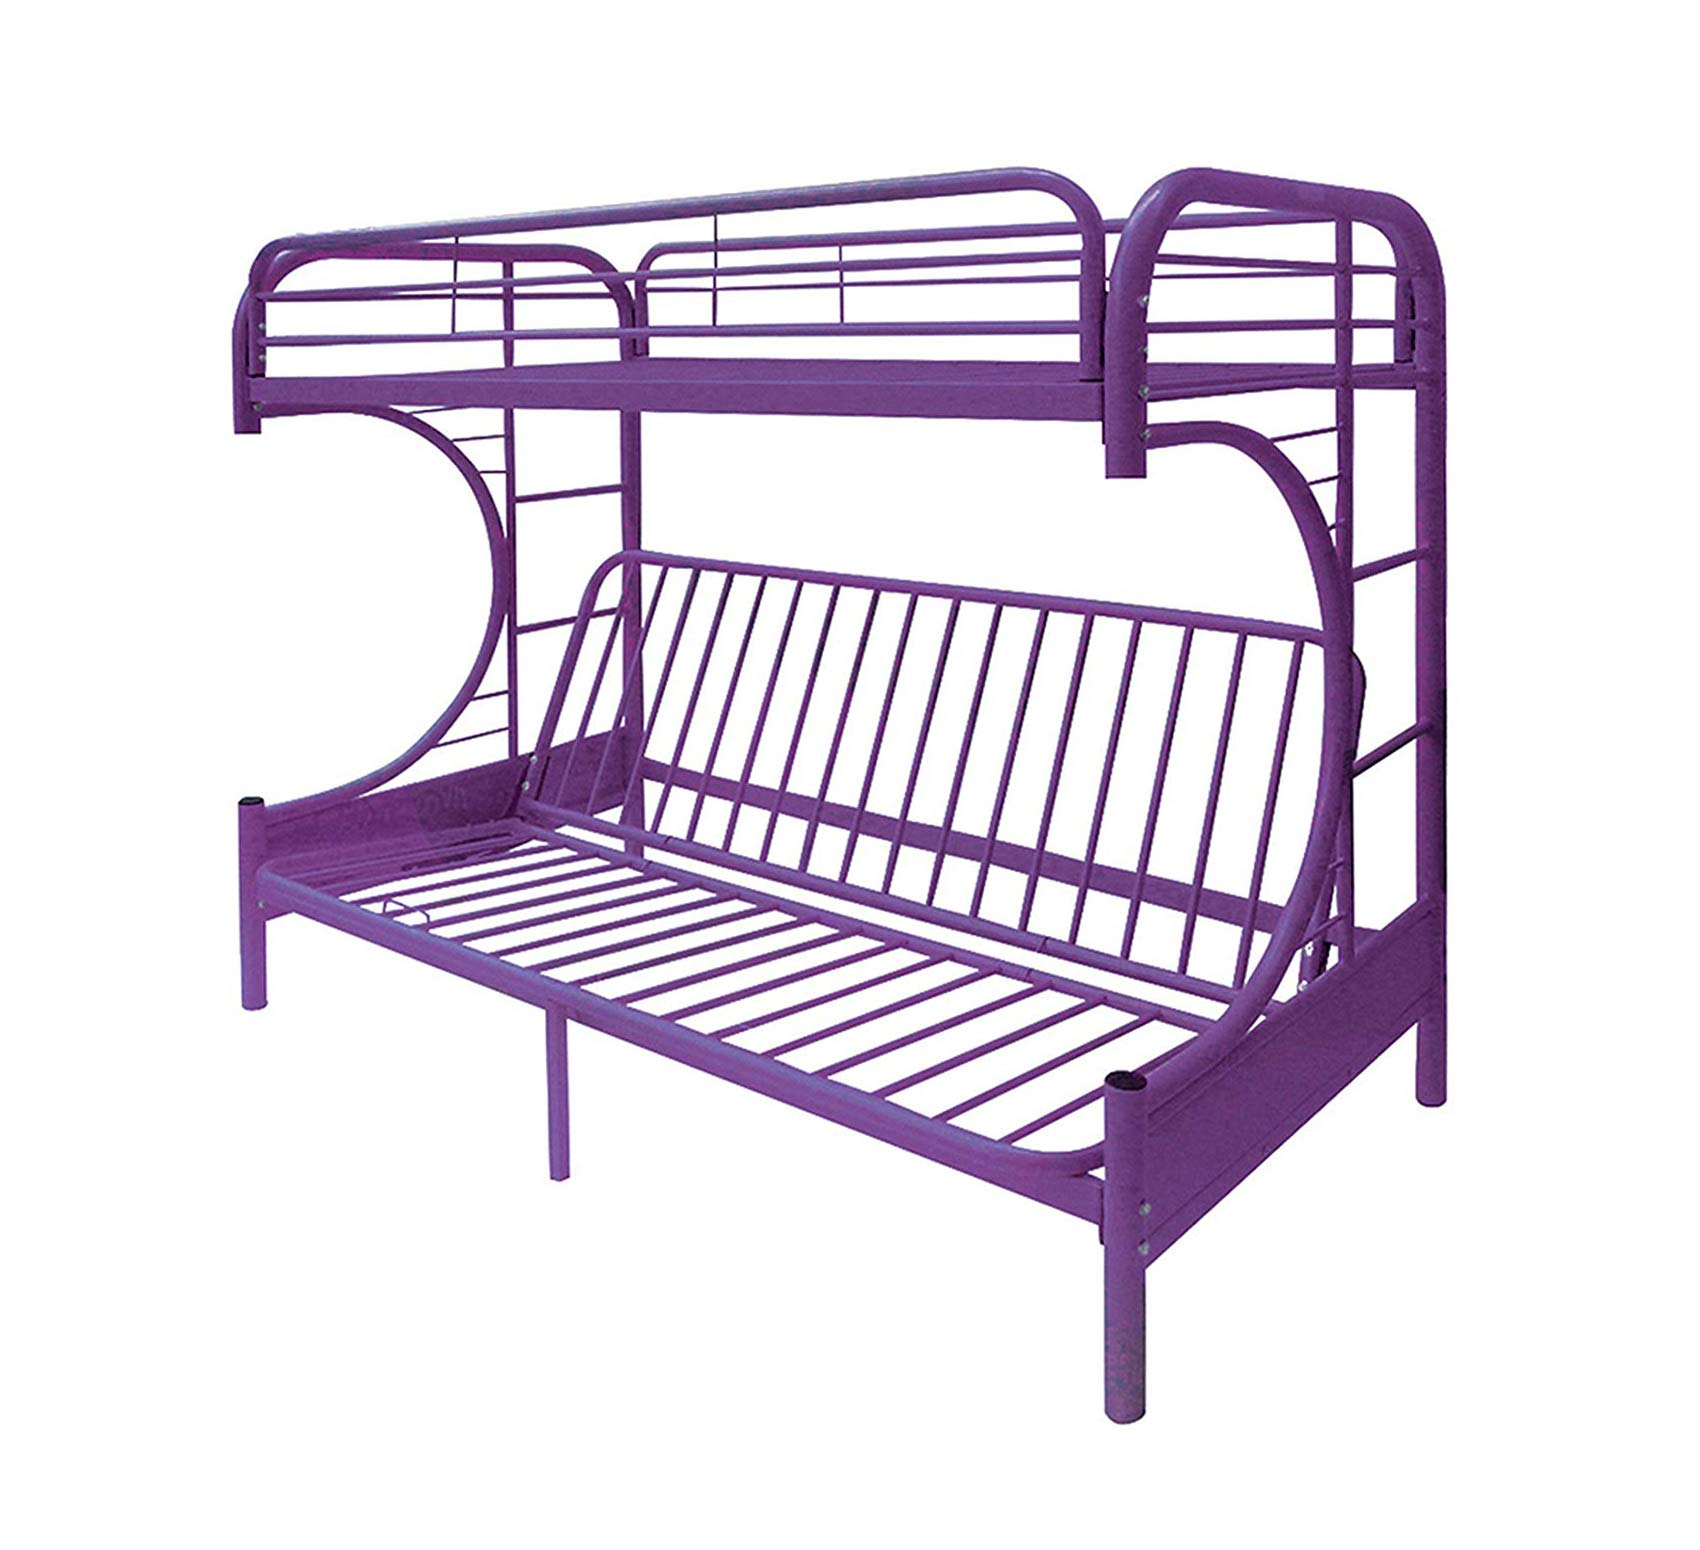 Wood & Style Home Eclipse Futon Bunk Bed, Twin/Full, Purple Office Décor Studio Living Heavy Duty Commercial Bar Café Restaurant by Wood & Style